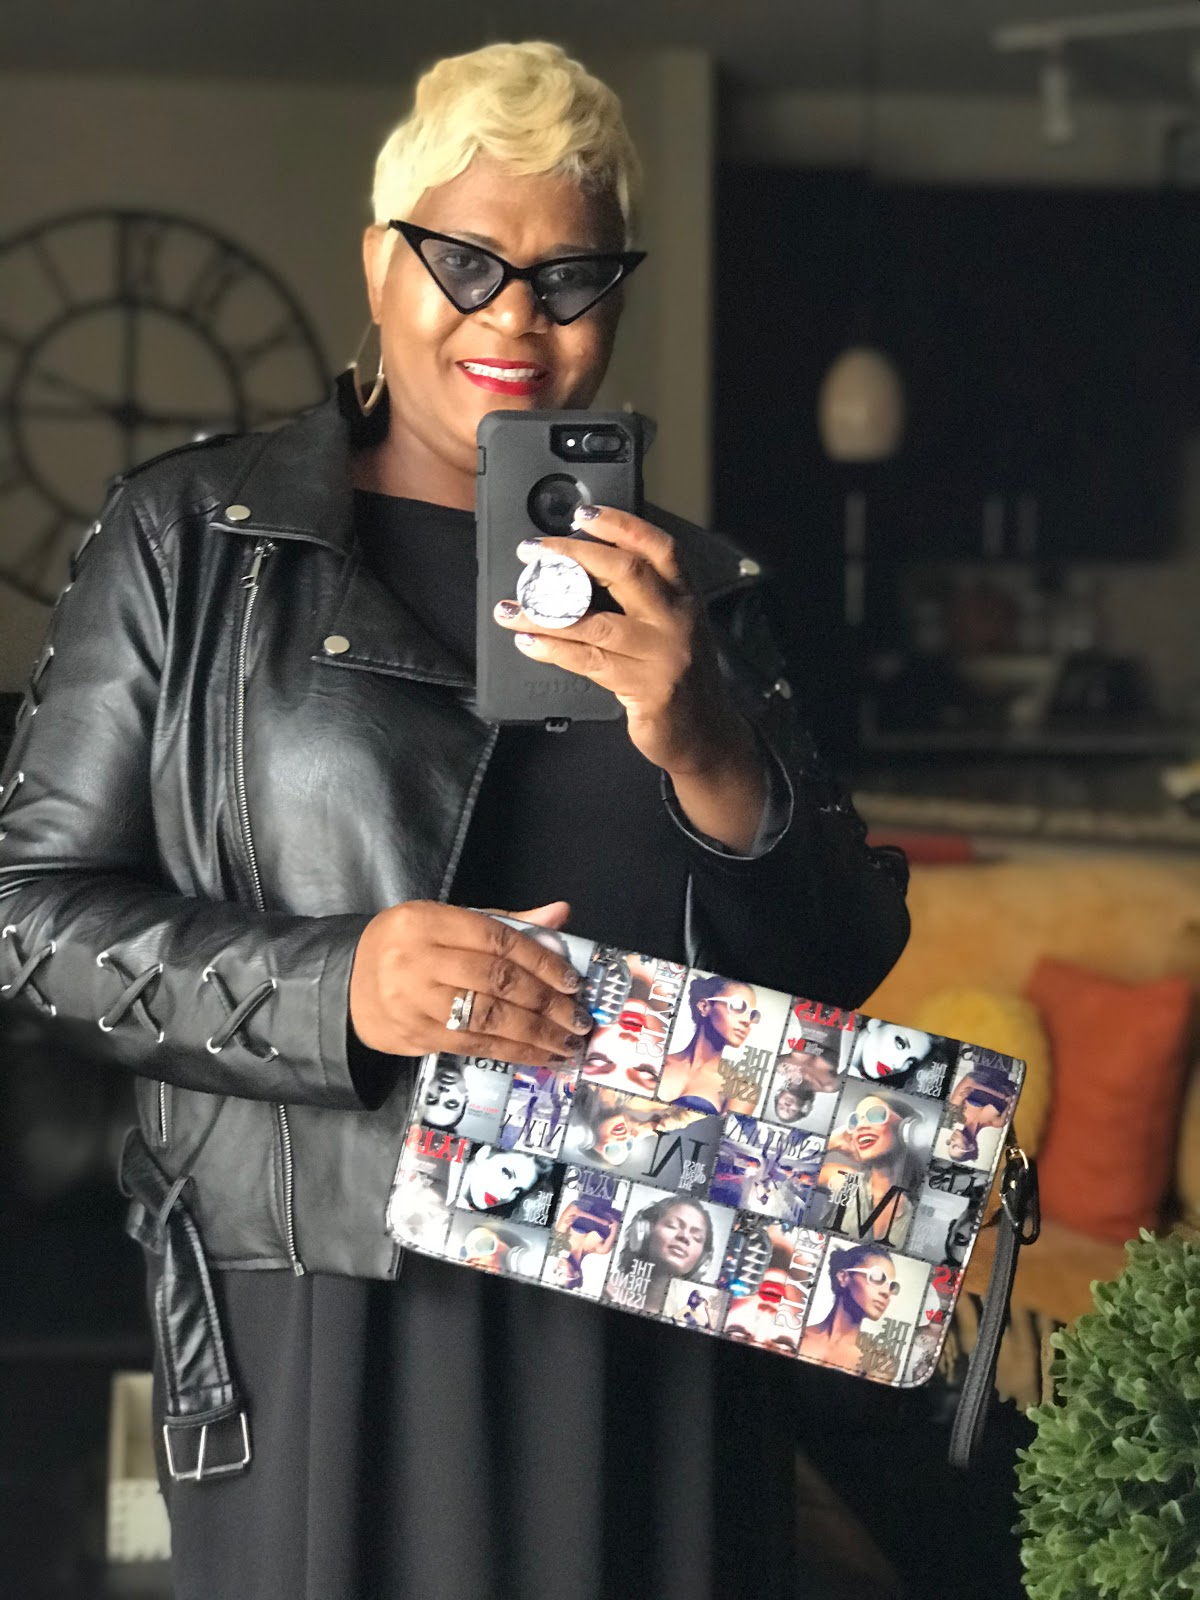 Tangie Bell sharing her outfit and magazine clutch bag before heading out to do DIY sale shopping